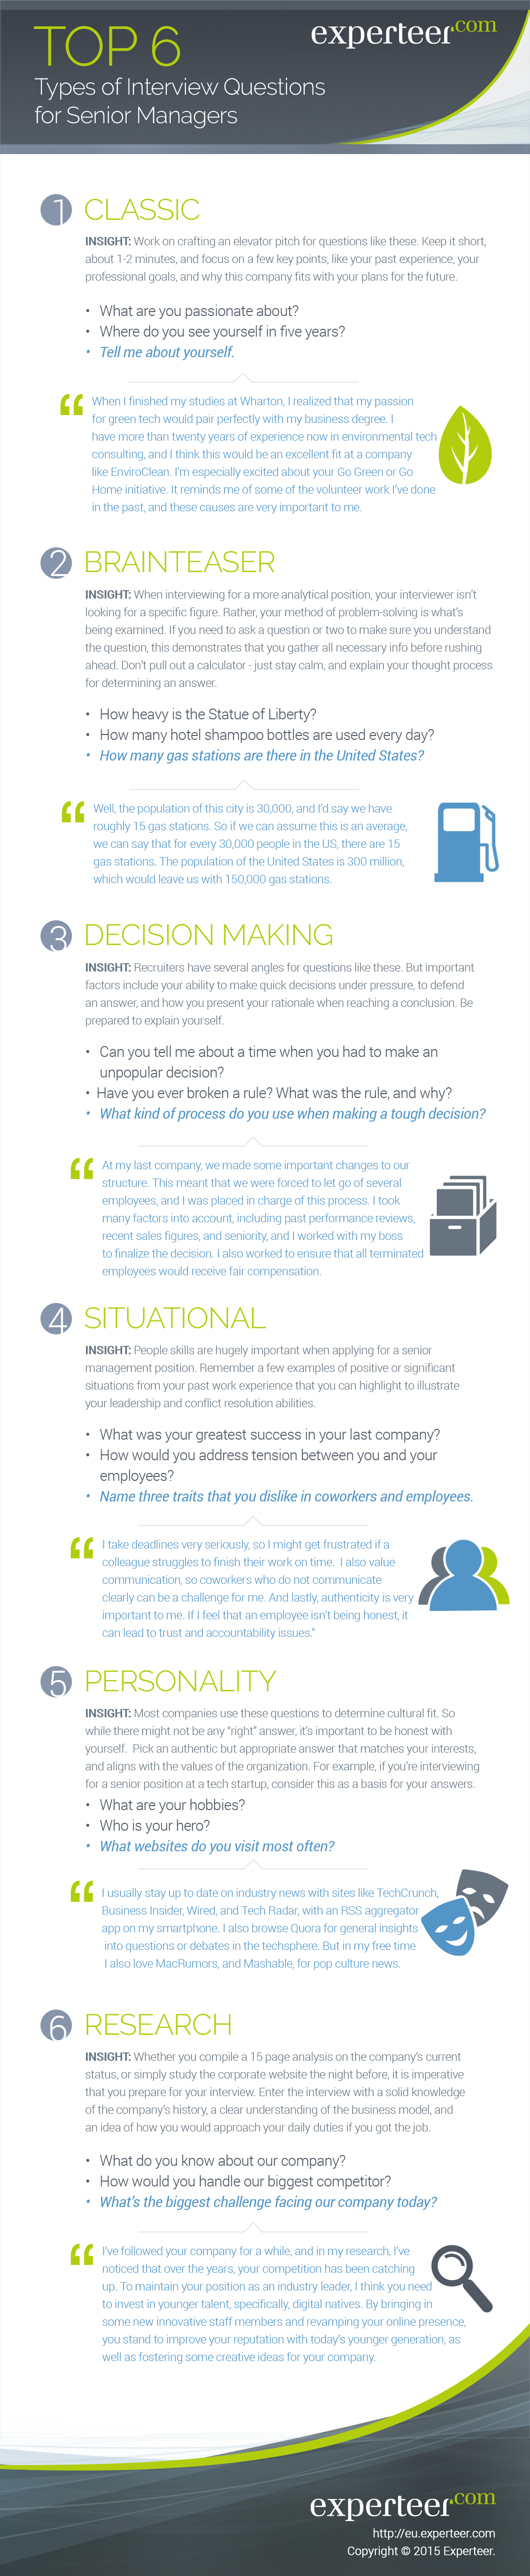 The Top 6 Most Common Interview Questions for Senior #Managers... @experteer